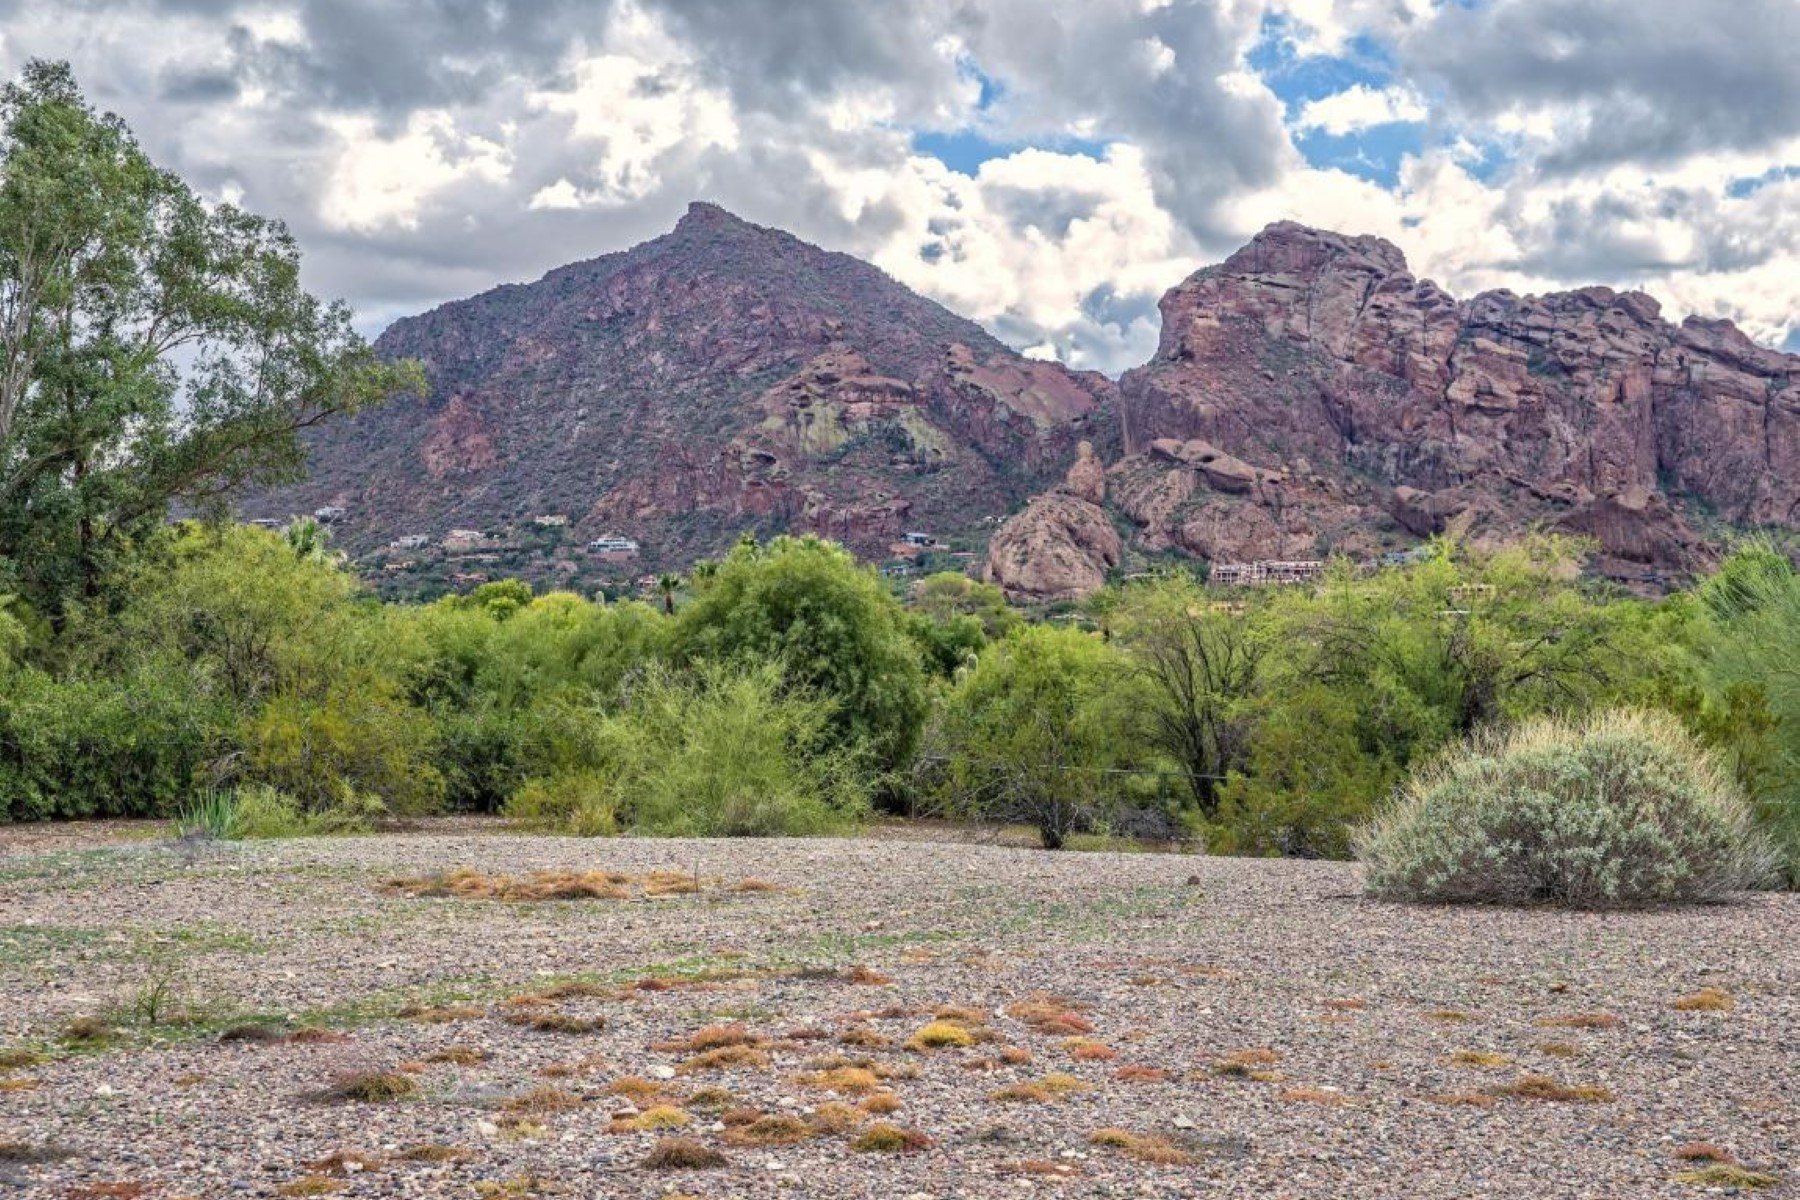 Terreno para Venda às One of the best locations in paradise valley with dramatic views 6722 N JOSHUA TREE LN 143 Paradise Valley, Arizona 85253 Estados Unidos